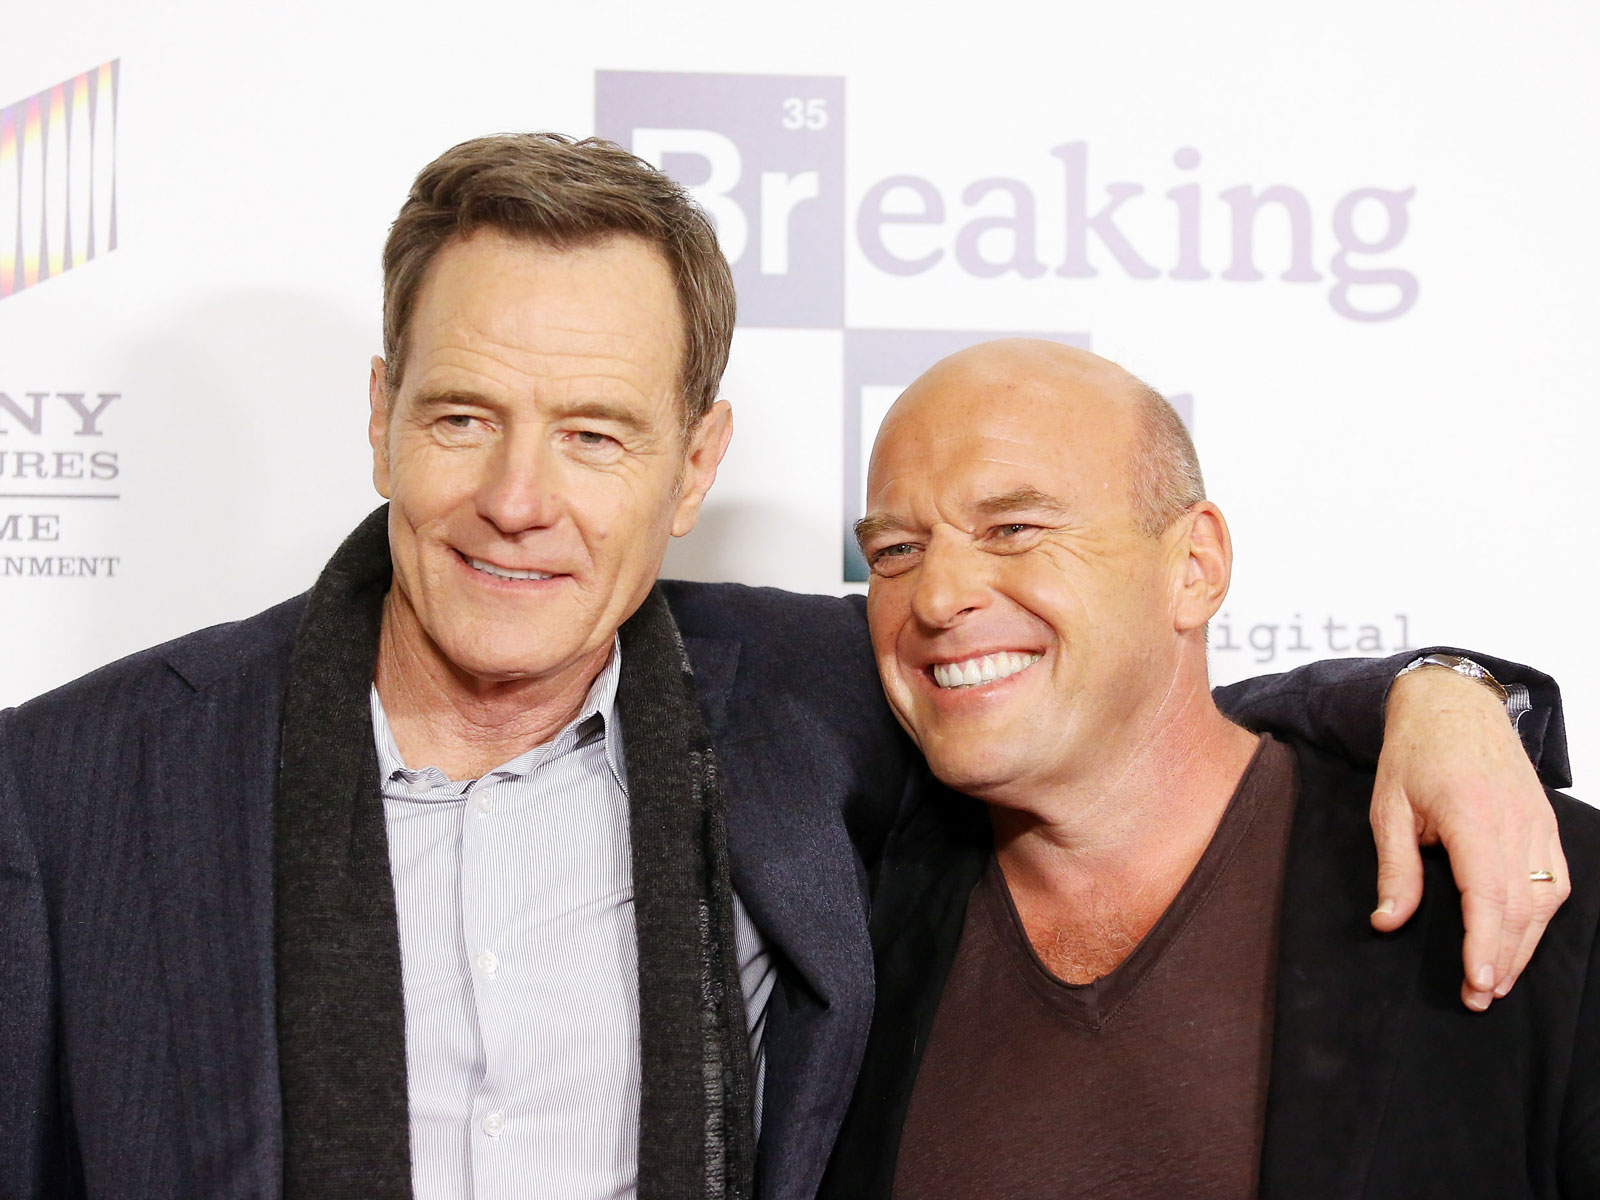 The Next 'Breaking Bad' Spinoff Could Be an Official Beer